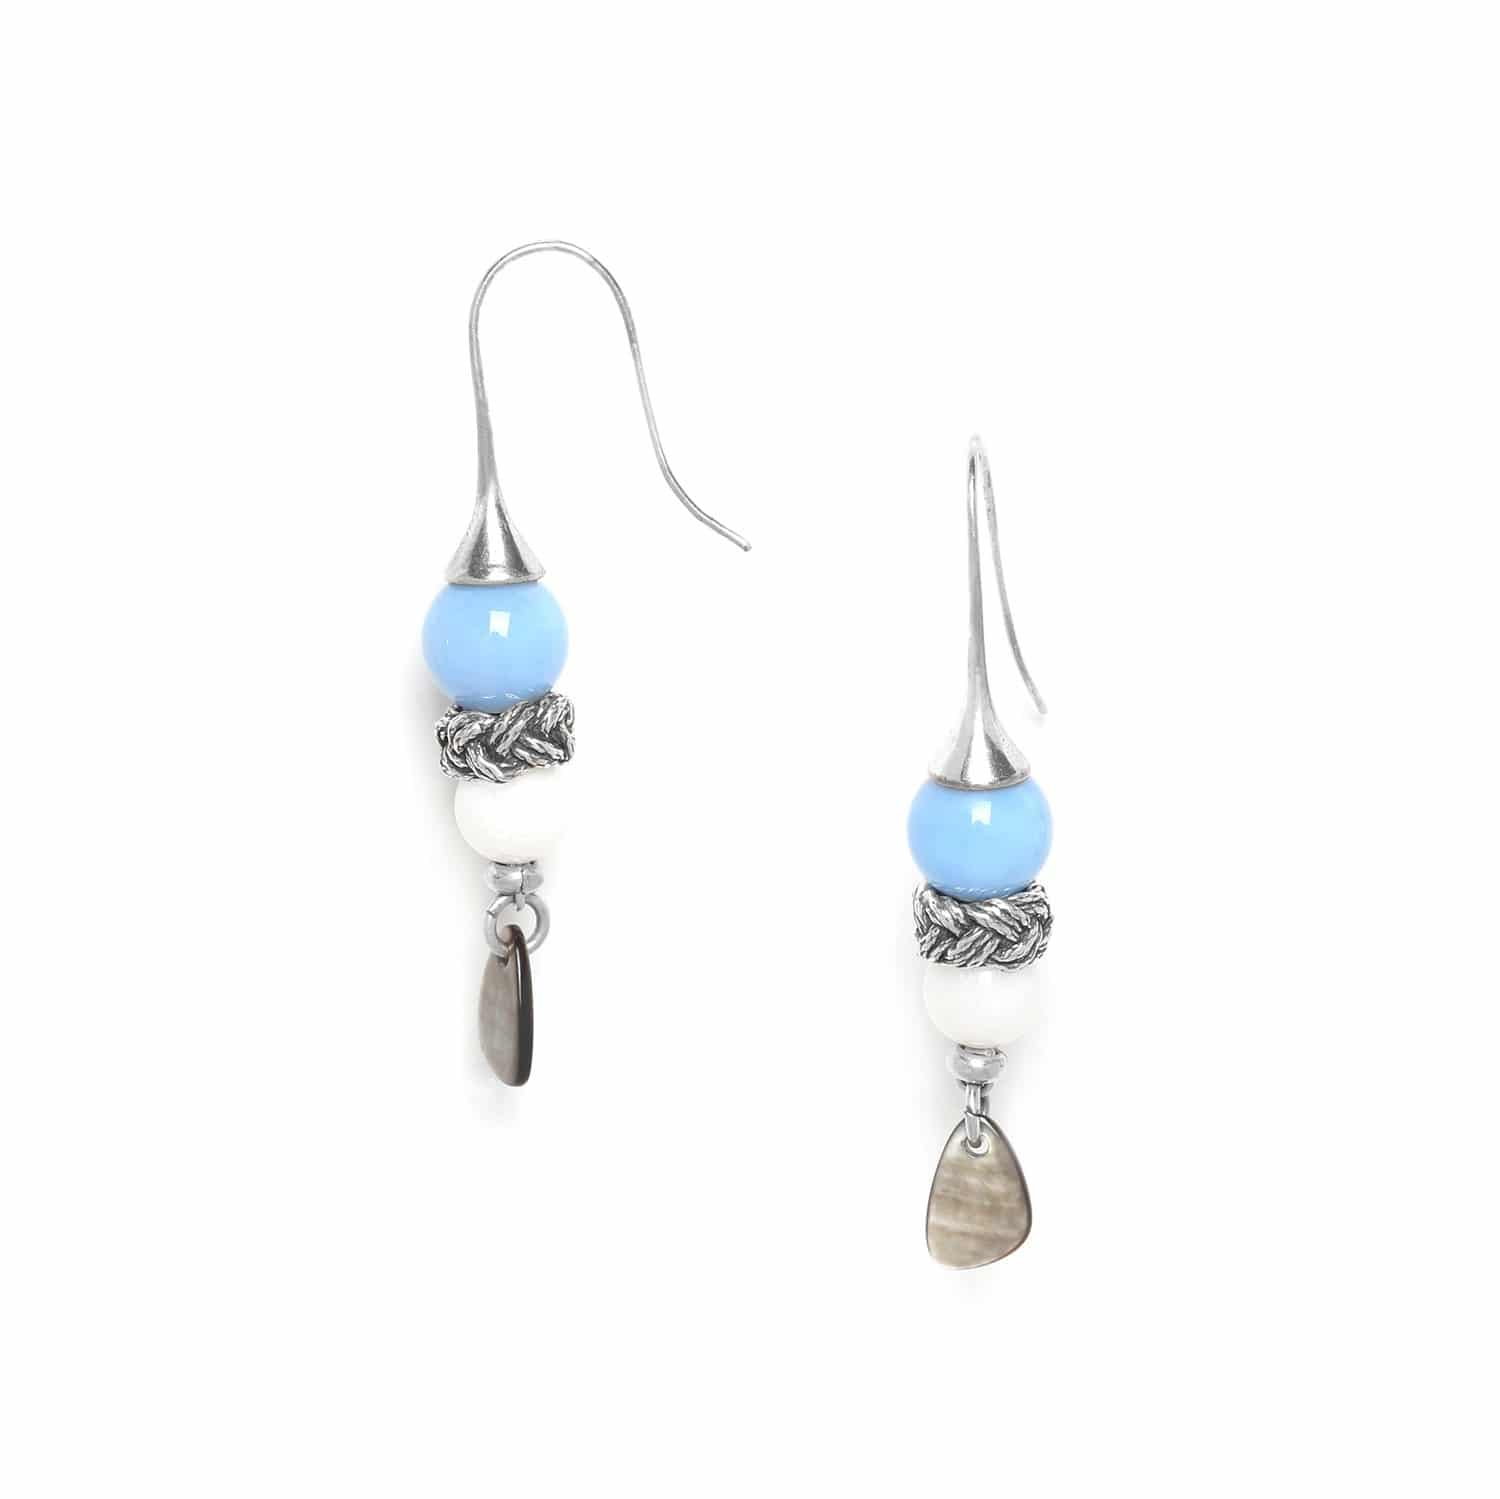 LES CALANQUES hook earrings 3 elements black lip chalcedony and calcite